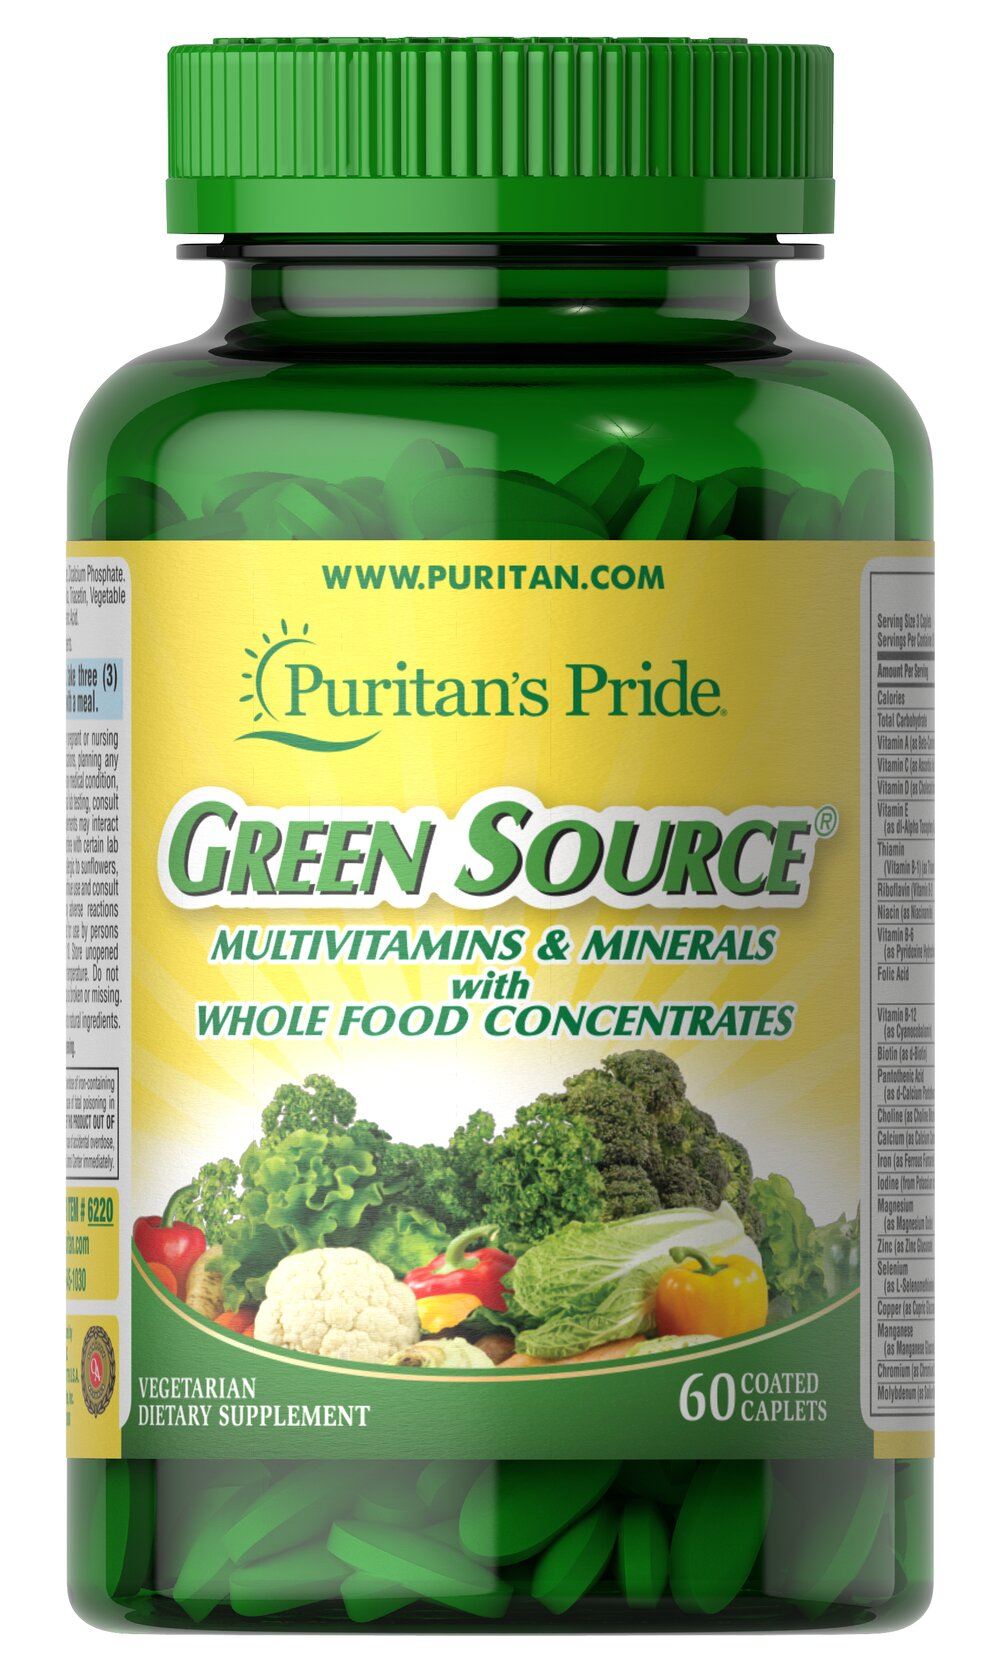 Green Source® Multivitamin & Minerals Thumbnail Alternate Bottle View